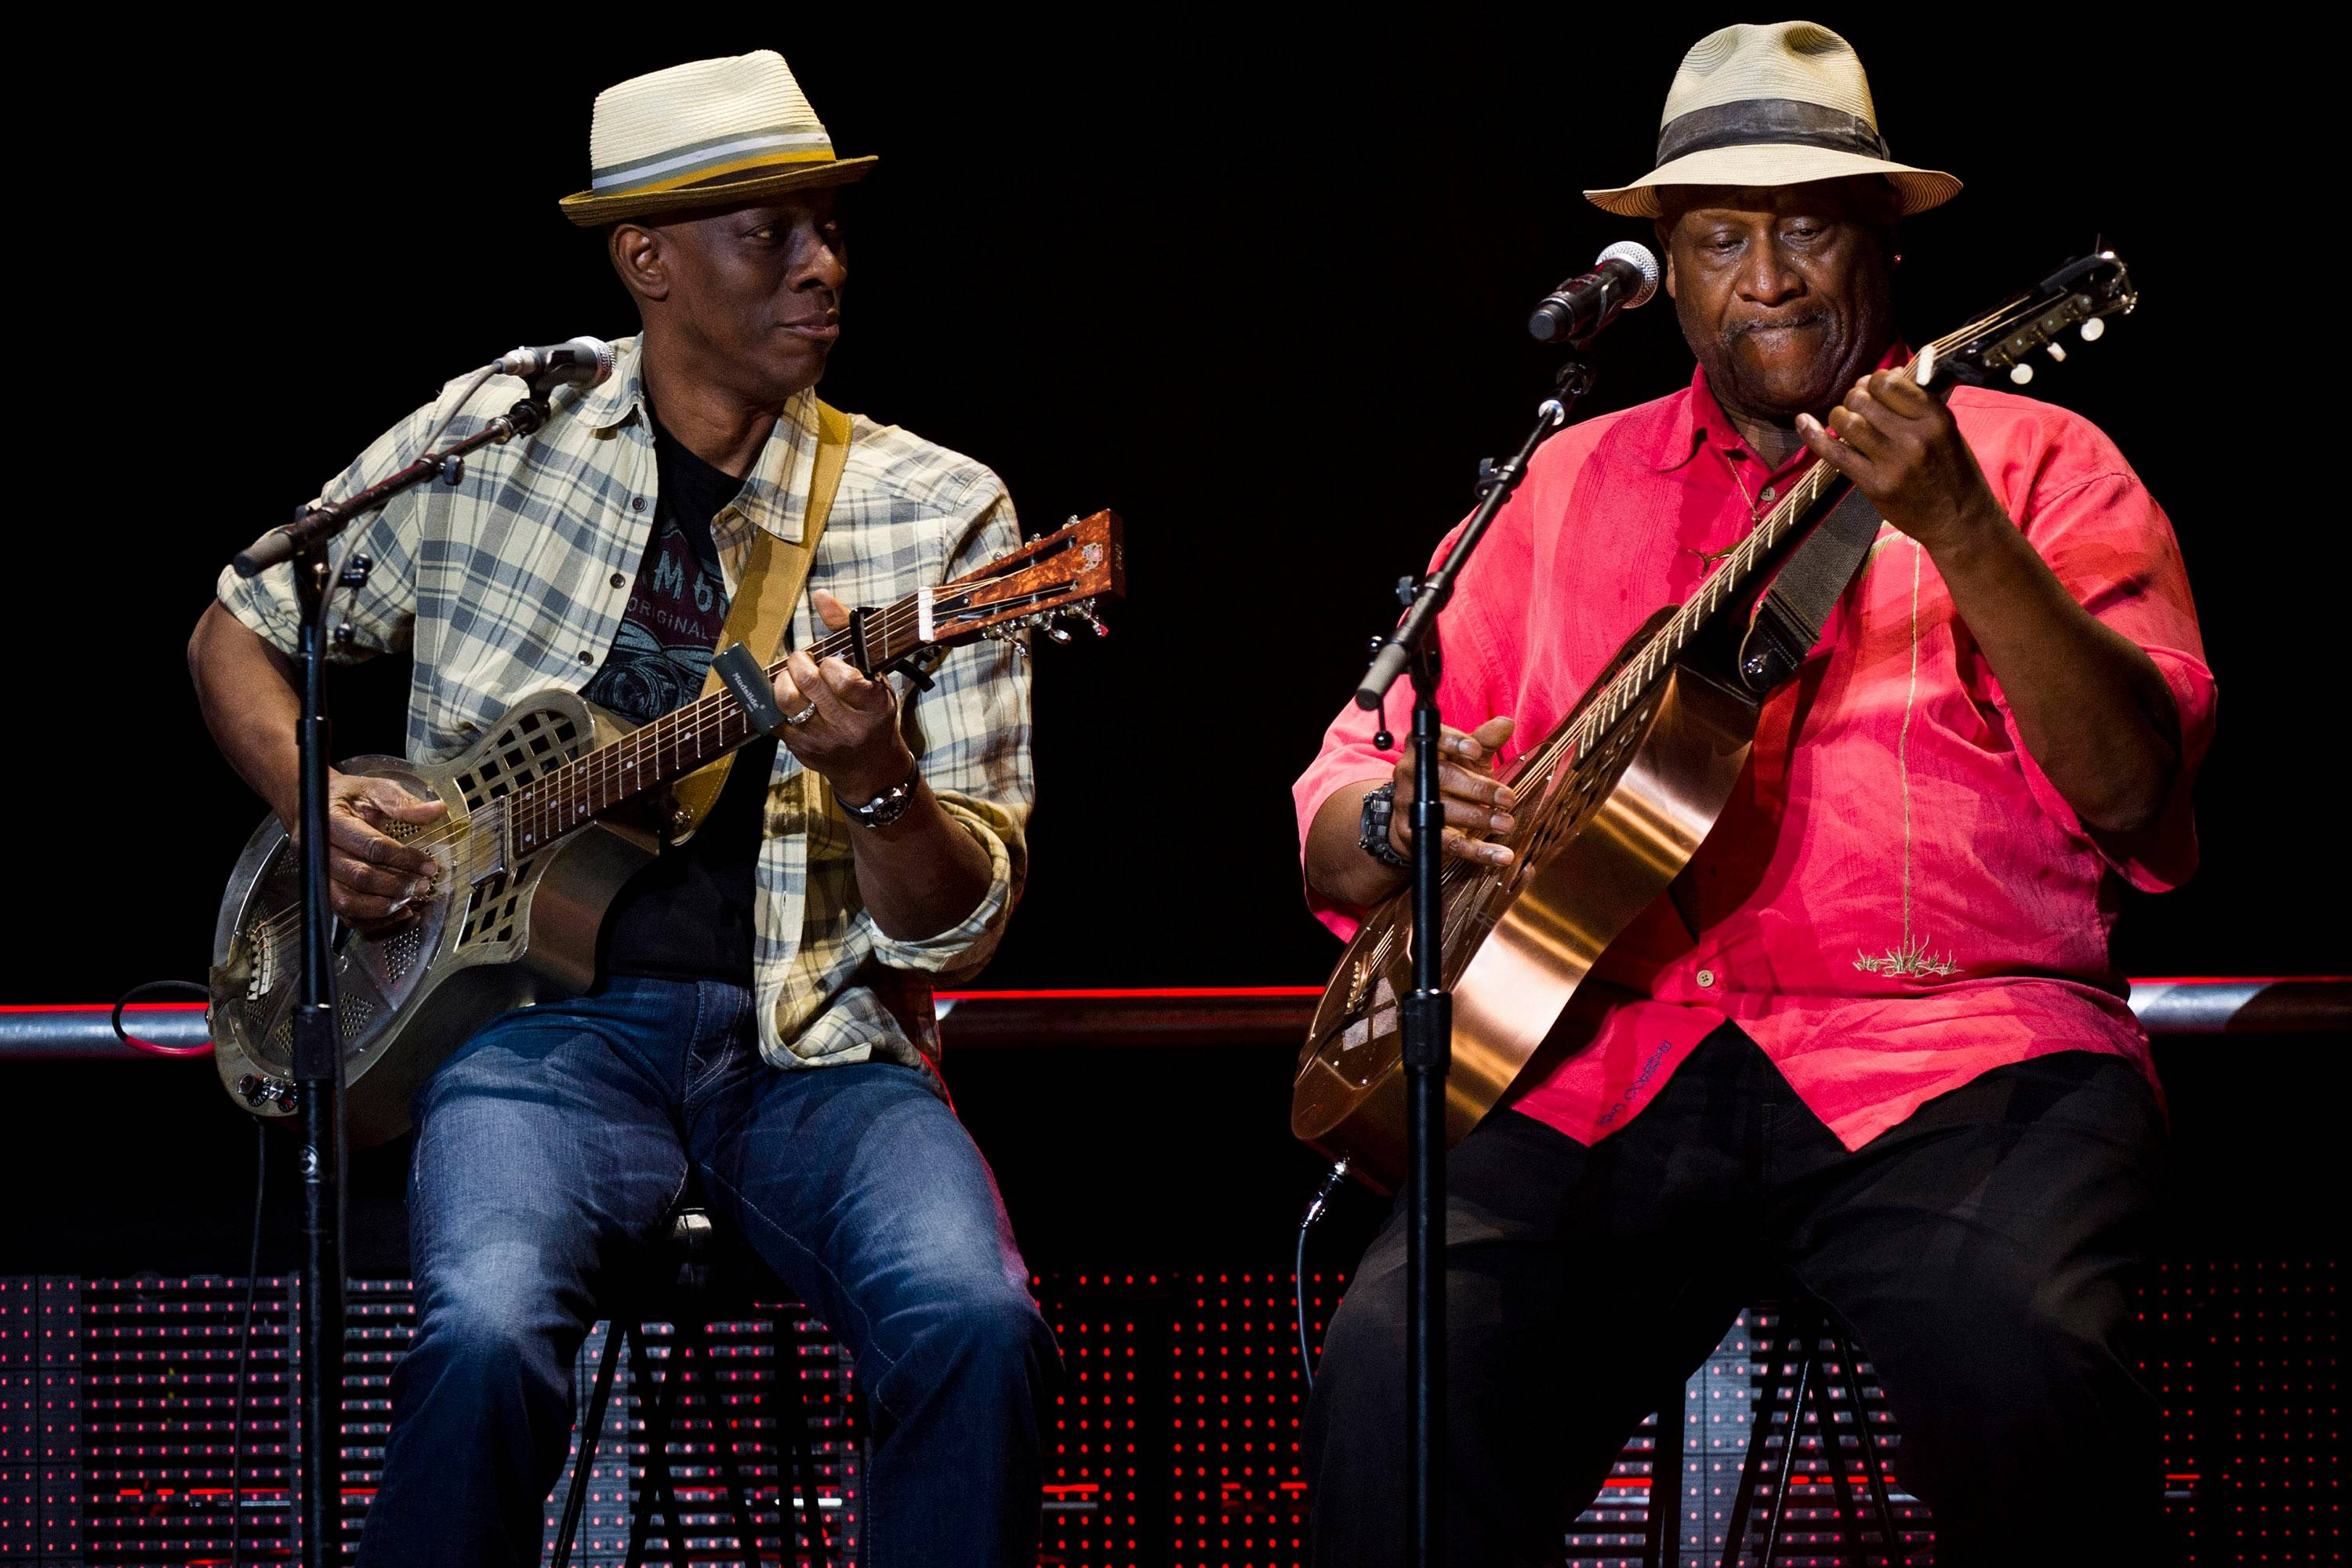 Taj Mahal, right, who has performed with Etta James and Howlin' Wolf, as well as the Rolling Stones and Eric Clapton, will take the stage at RiverEdge Park for Aurora's Blues on the Fox festival.